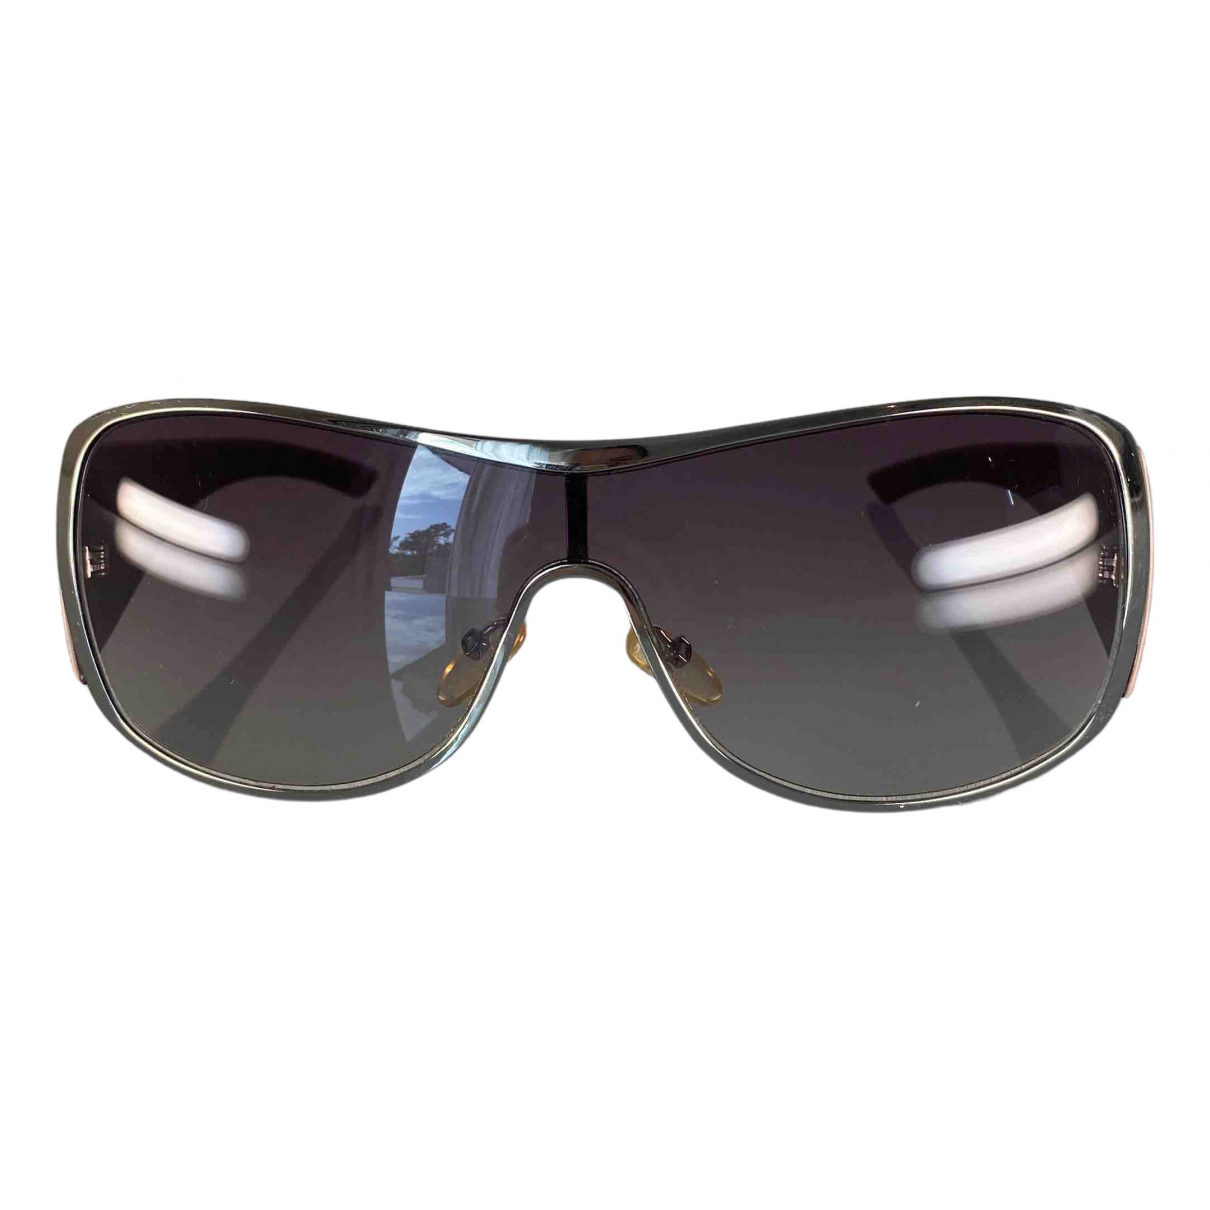 Dior \N Burgundy Sunglasses for Women \N